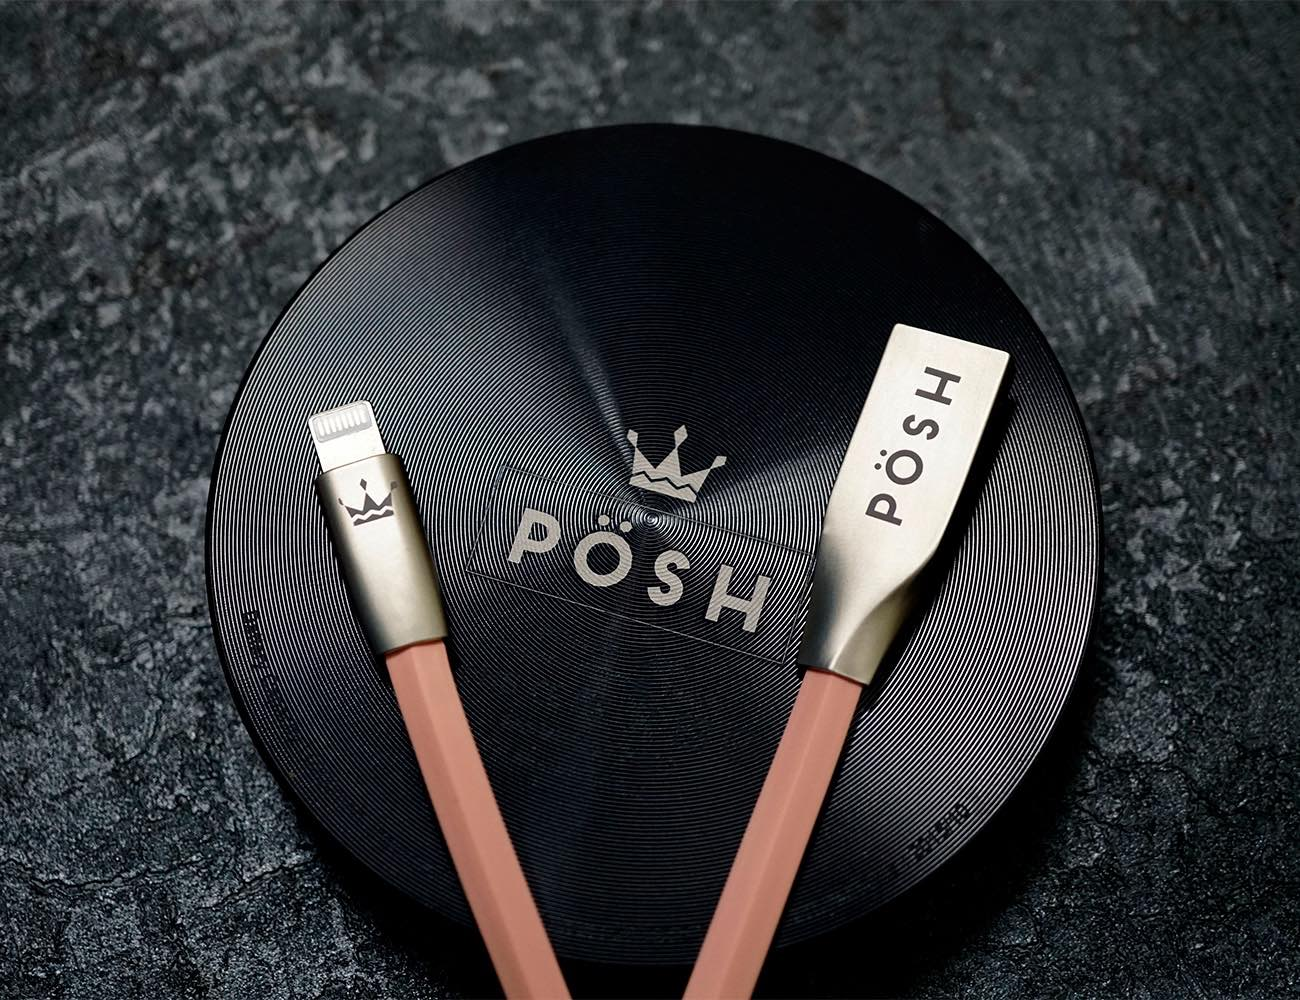 POSH – Most Exquisite & Luxurious Charging Cable